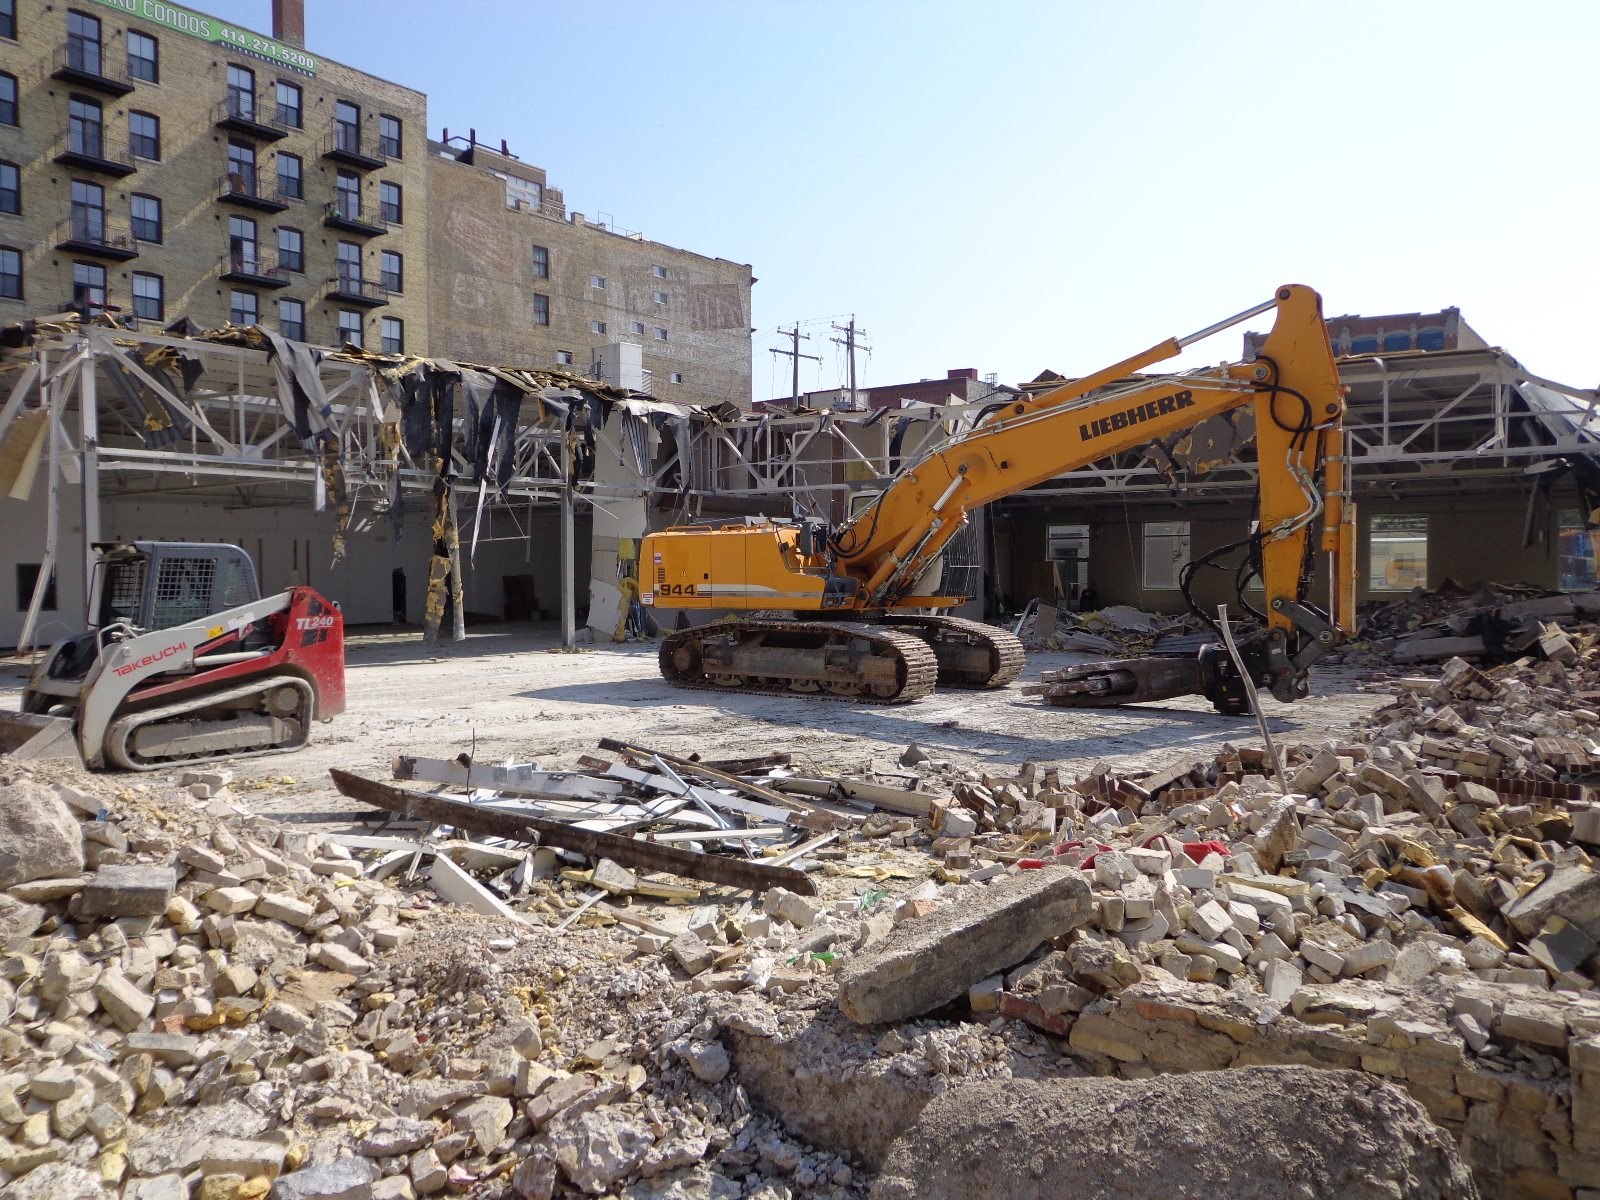 Demolition of 252 E. Menomonee St. to make way for MIAD\'s new residence hall.